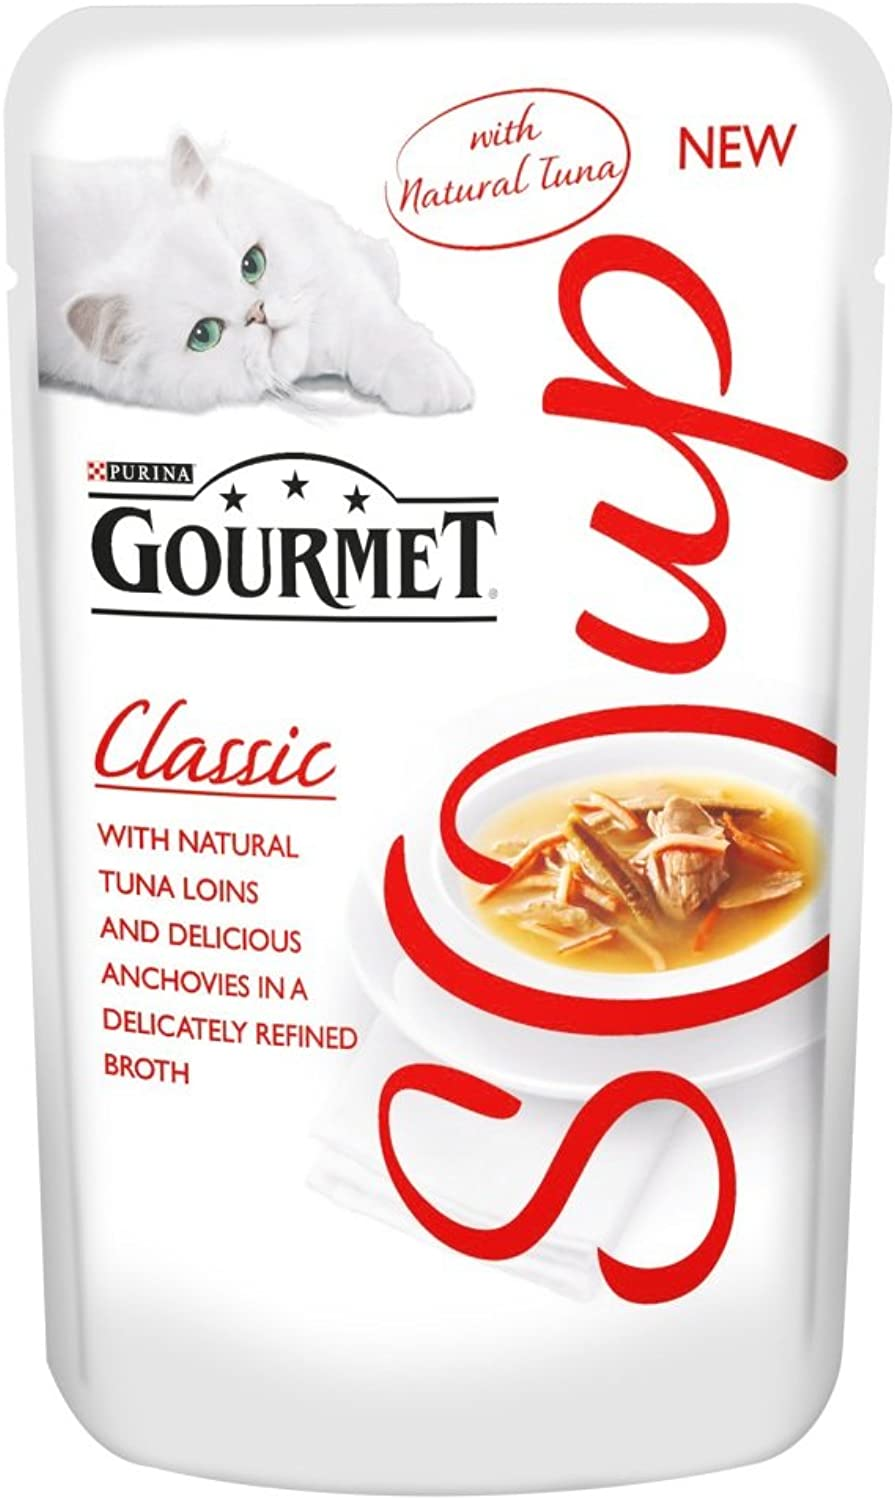 Gourmet Classic Soup with Tuna and Anchovies, 40 g